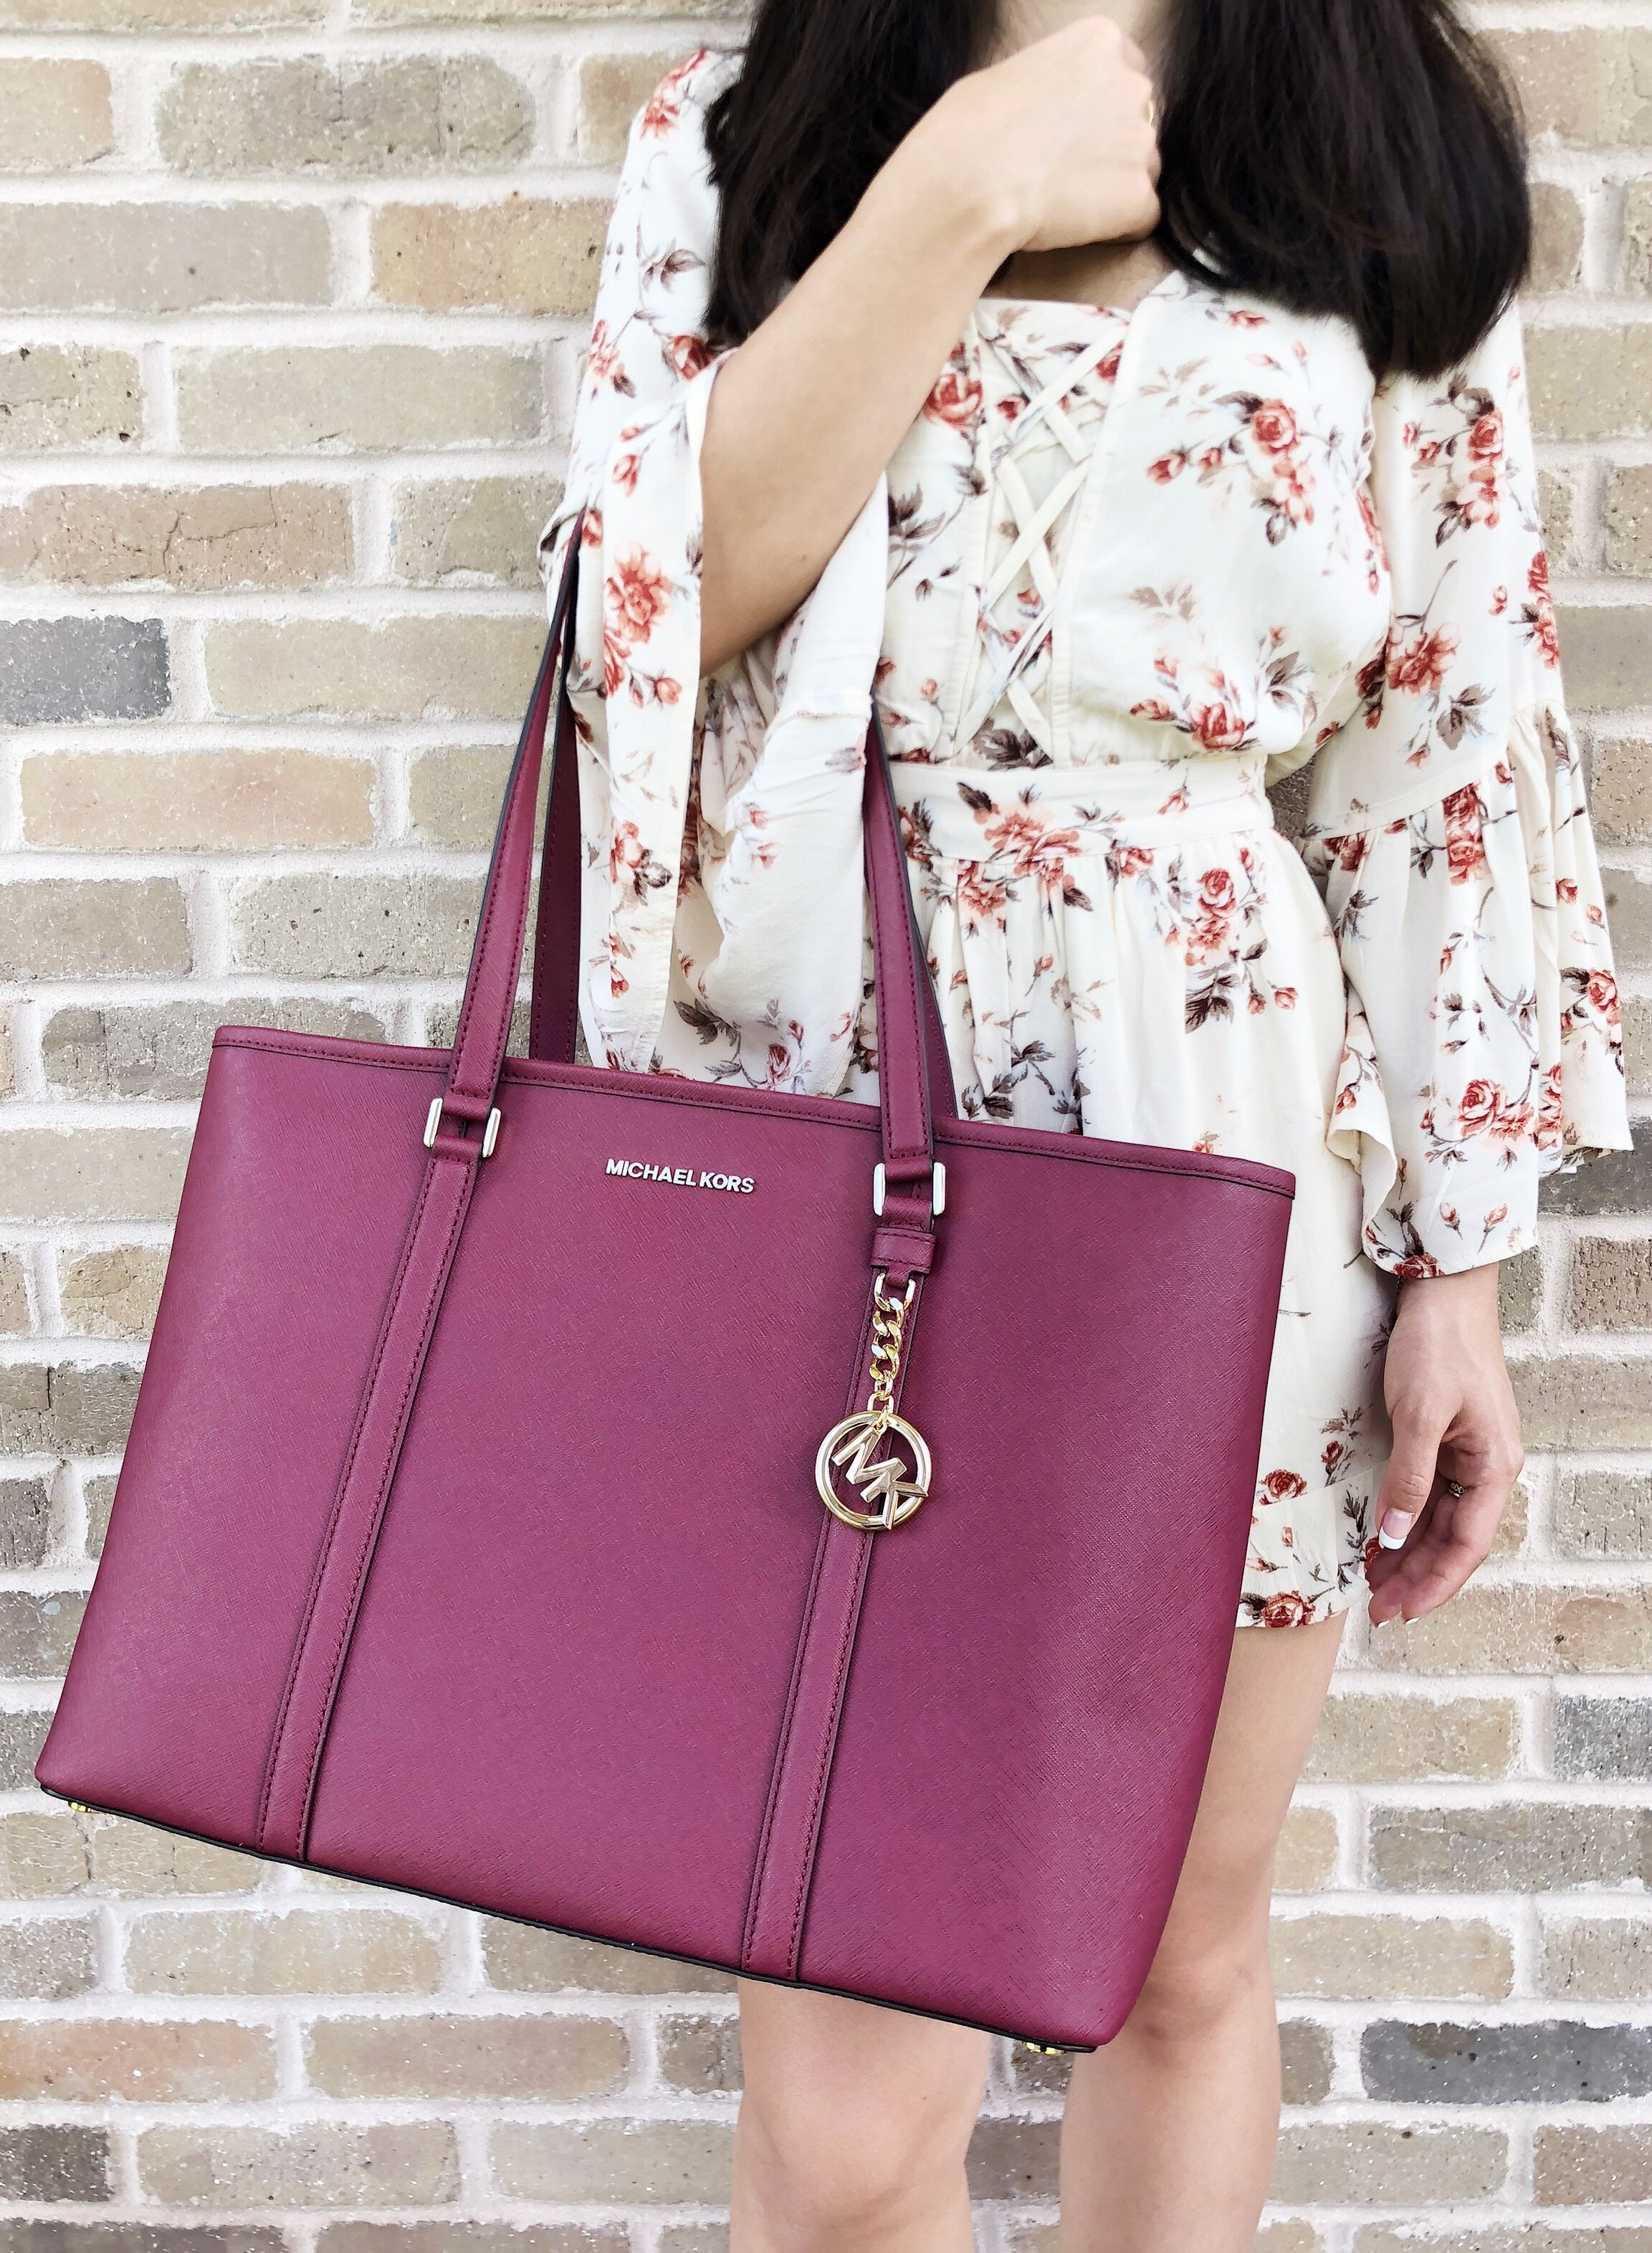 b52ad11d4d Michael Kors Sady Large Multifunctional Top Zip Tote Mulberry Burgundy  Laptop - Walmart.com